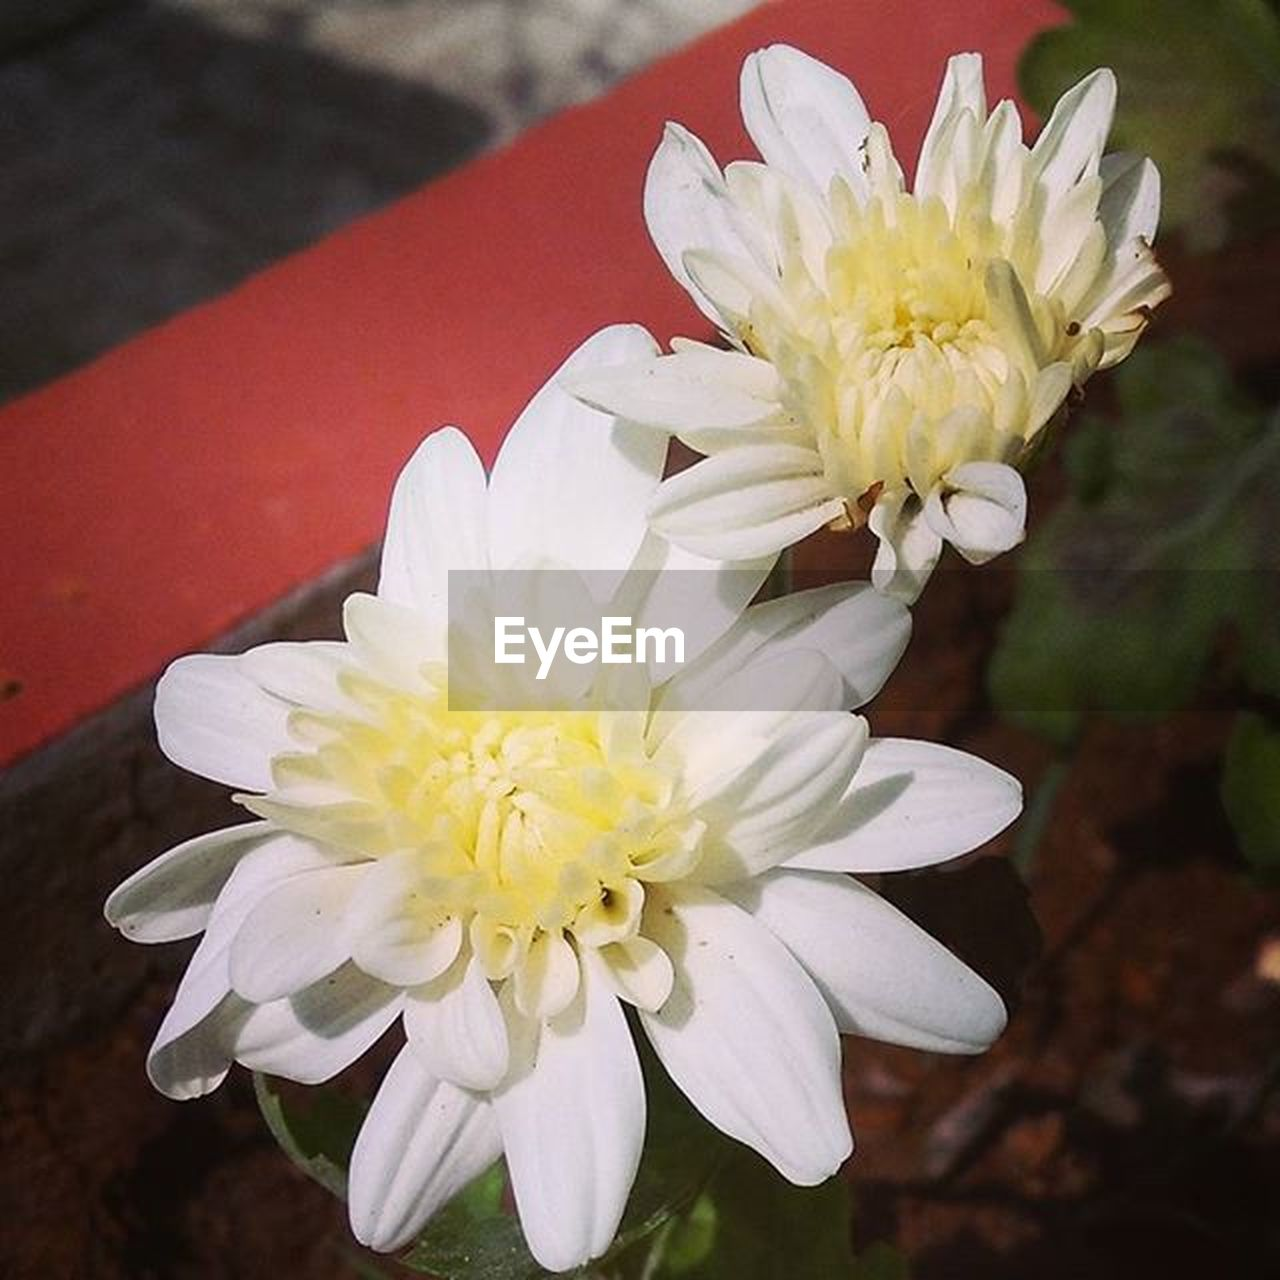 flower, white color, petal, flower head, beauty in nature, nature, fragility, freshness, close-up, plant, growth, no people, day, outdoors